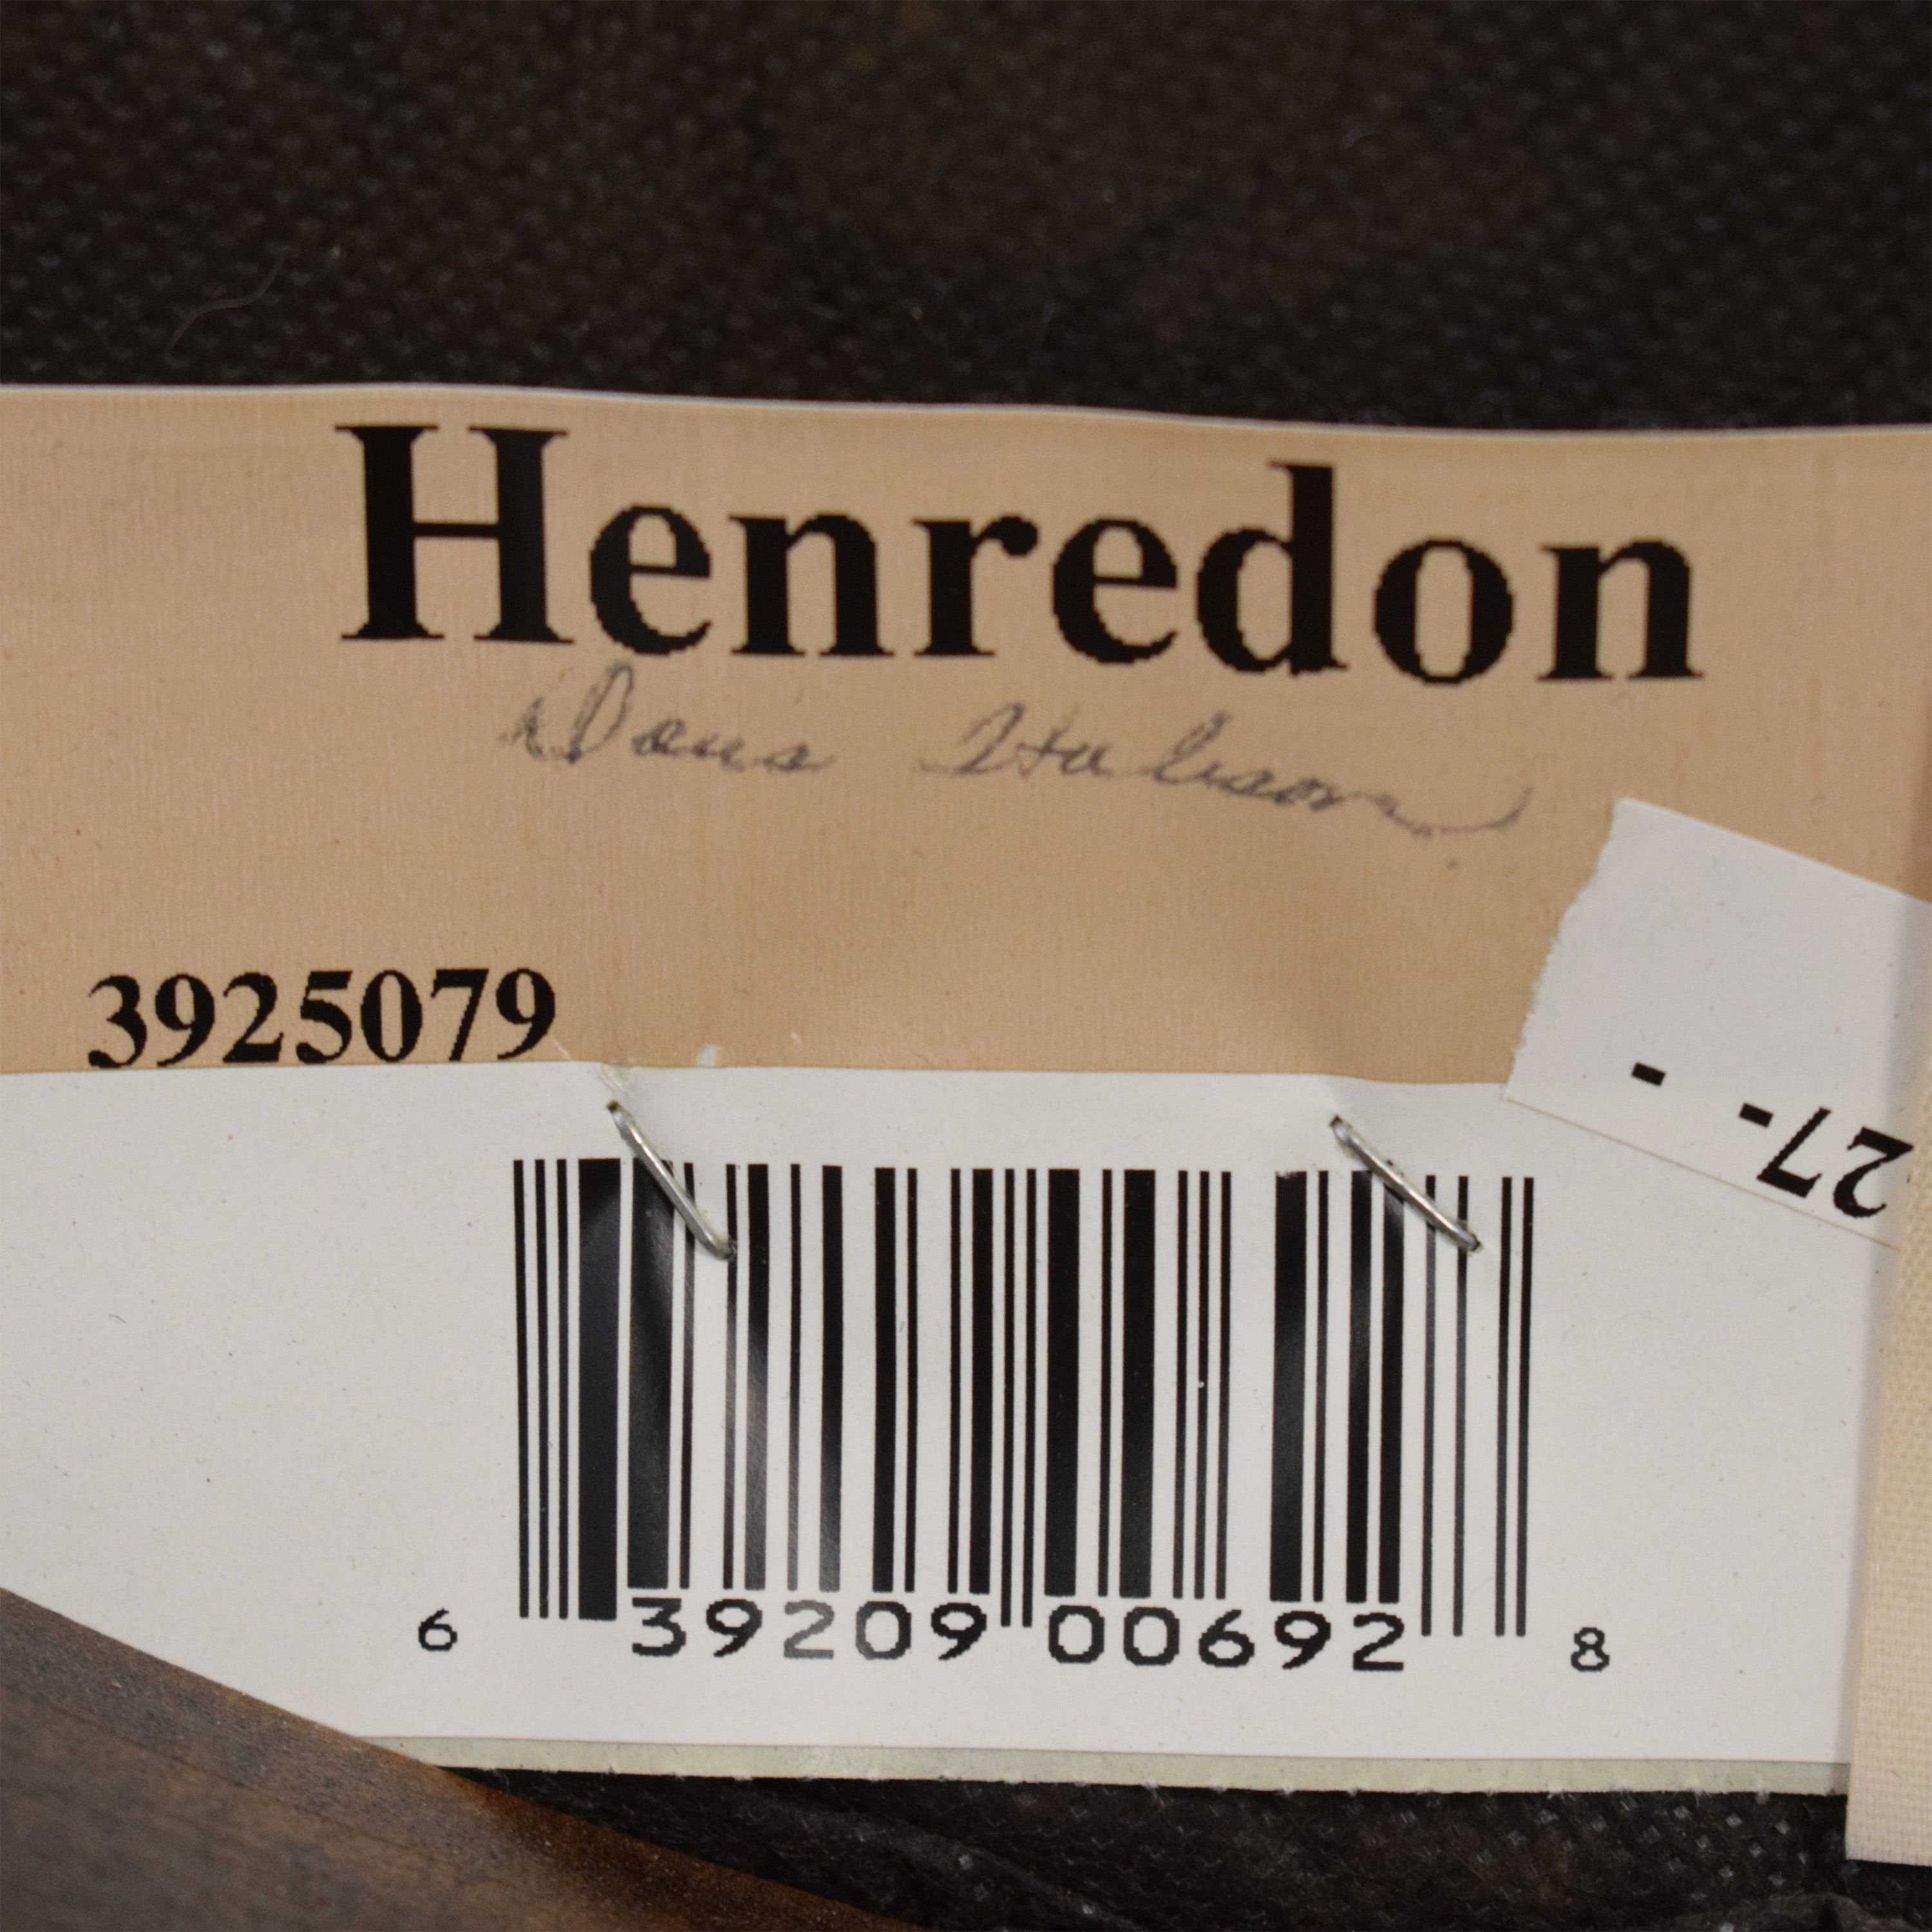 Henredon Furniture Herendon French Pierce Balloon Back Dining Chairs discount